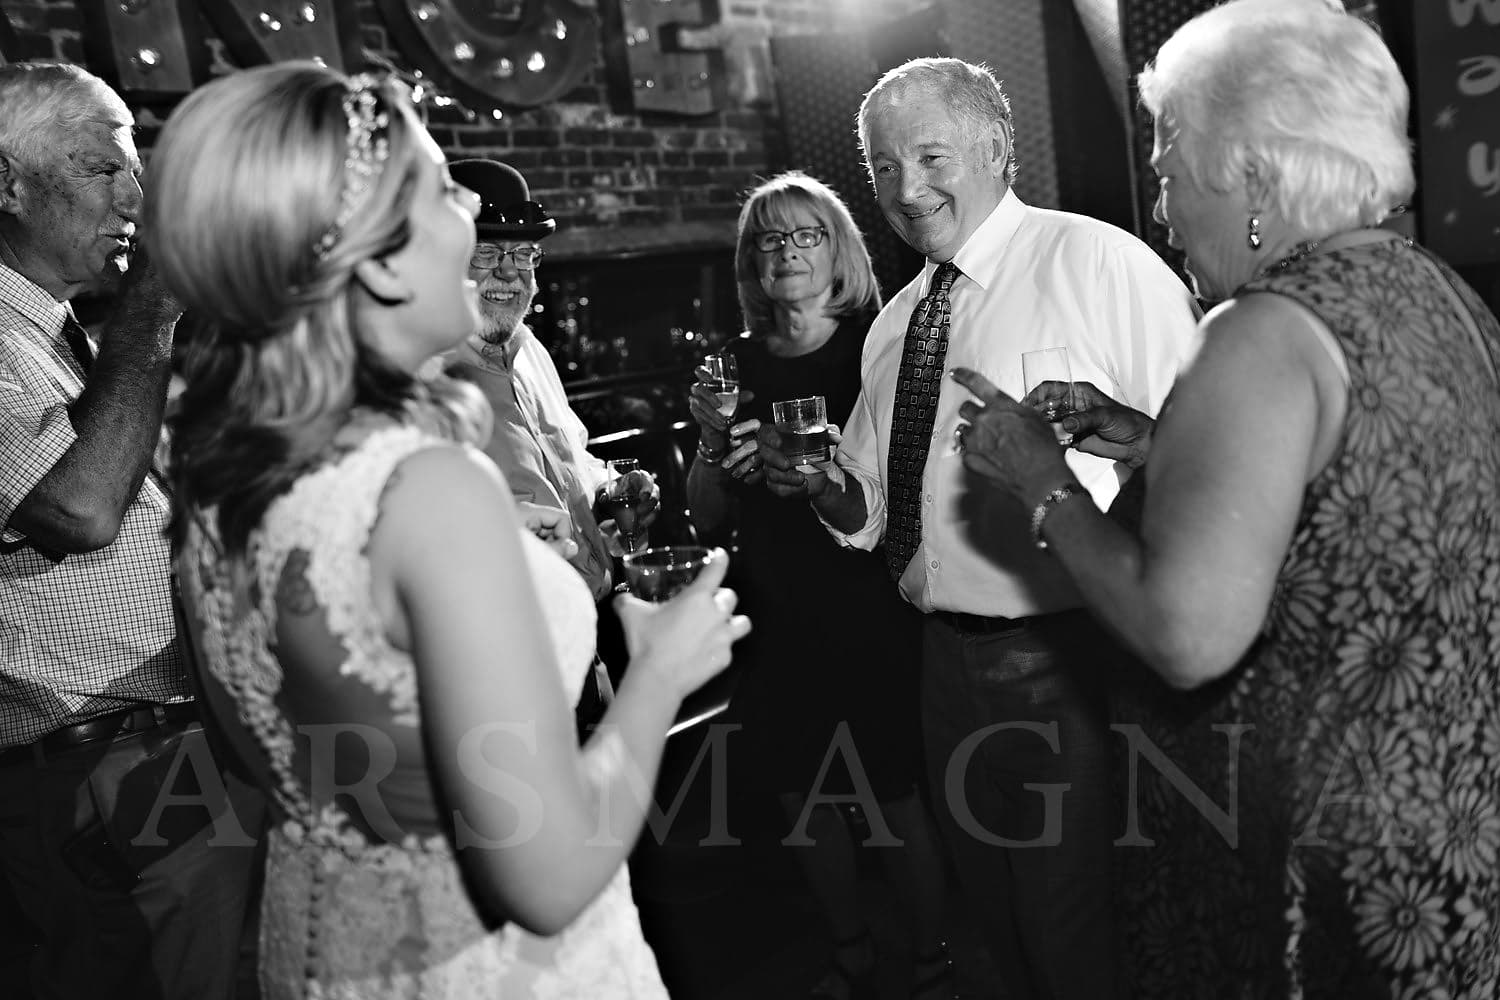 jamaica plain wedding photography indie reception milky way bella luna dance